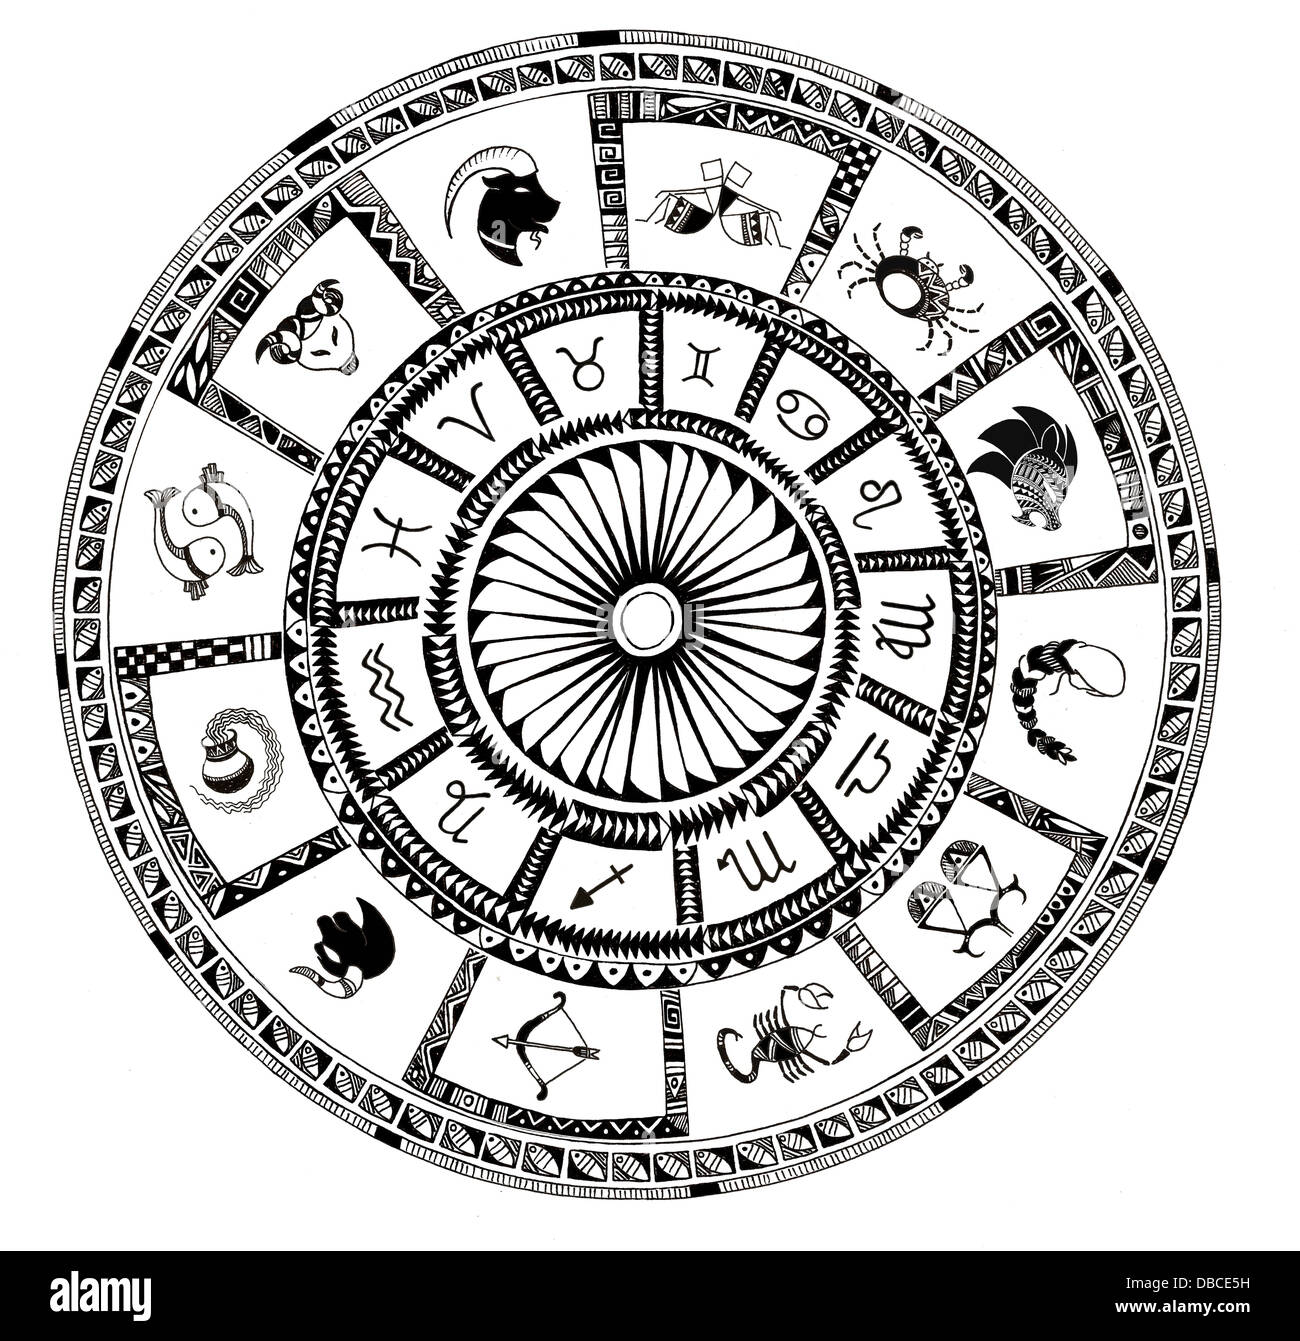 Illustration of Zodiac signs on white background - Stock Image